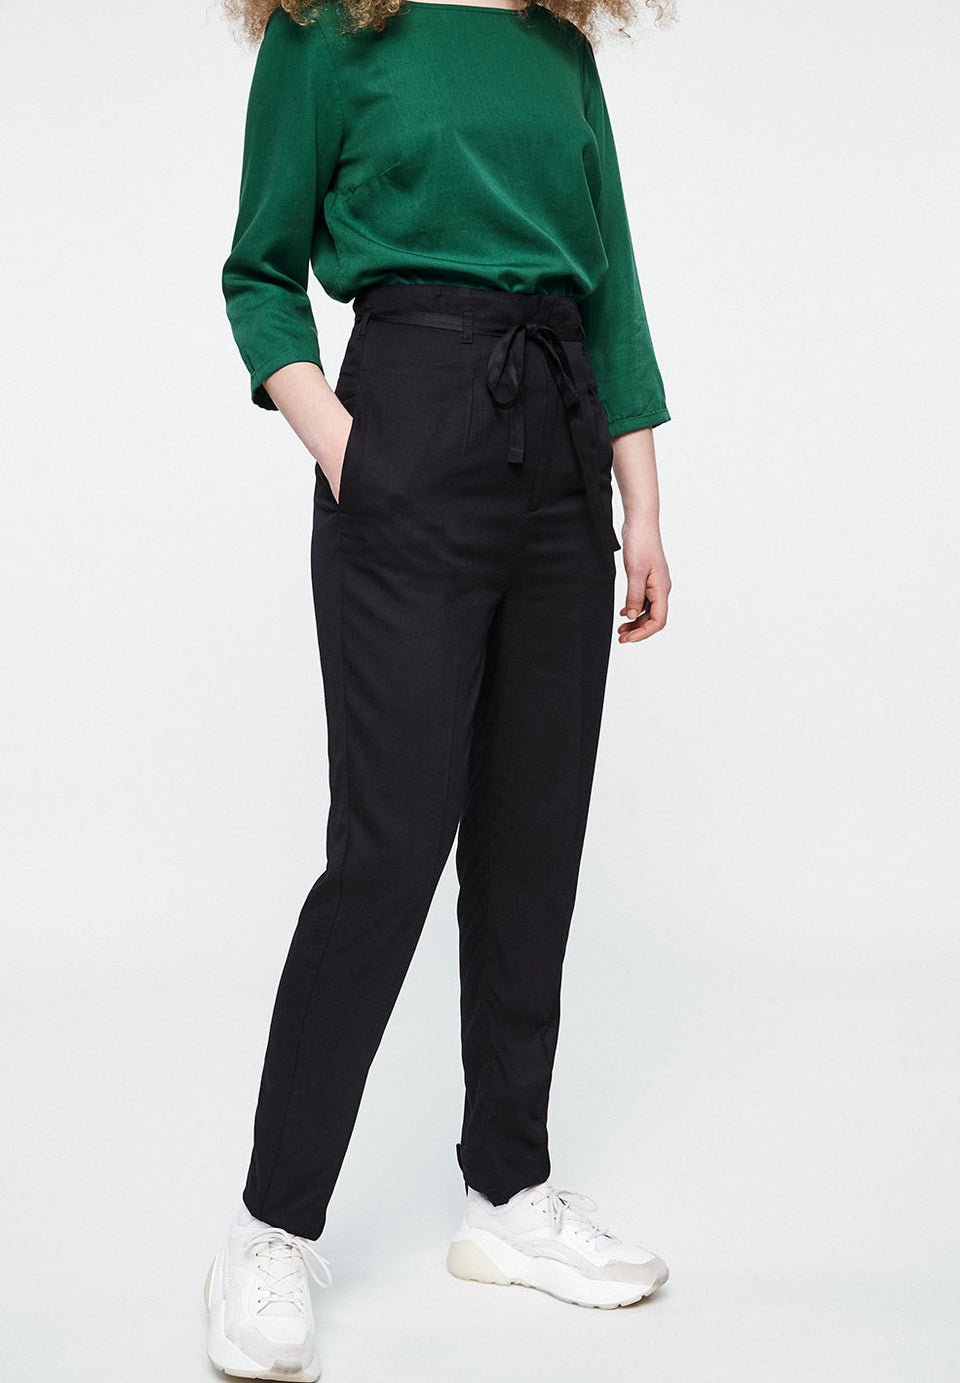 Saare Pants in Black